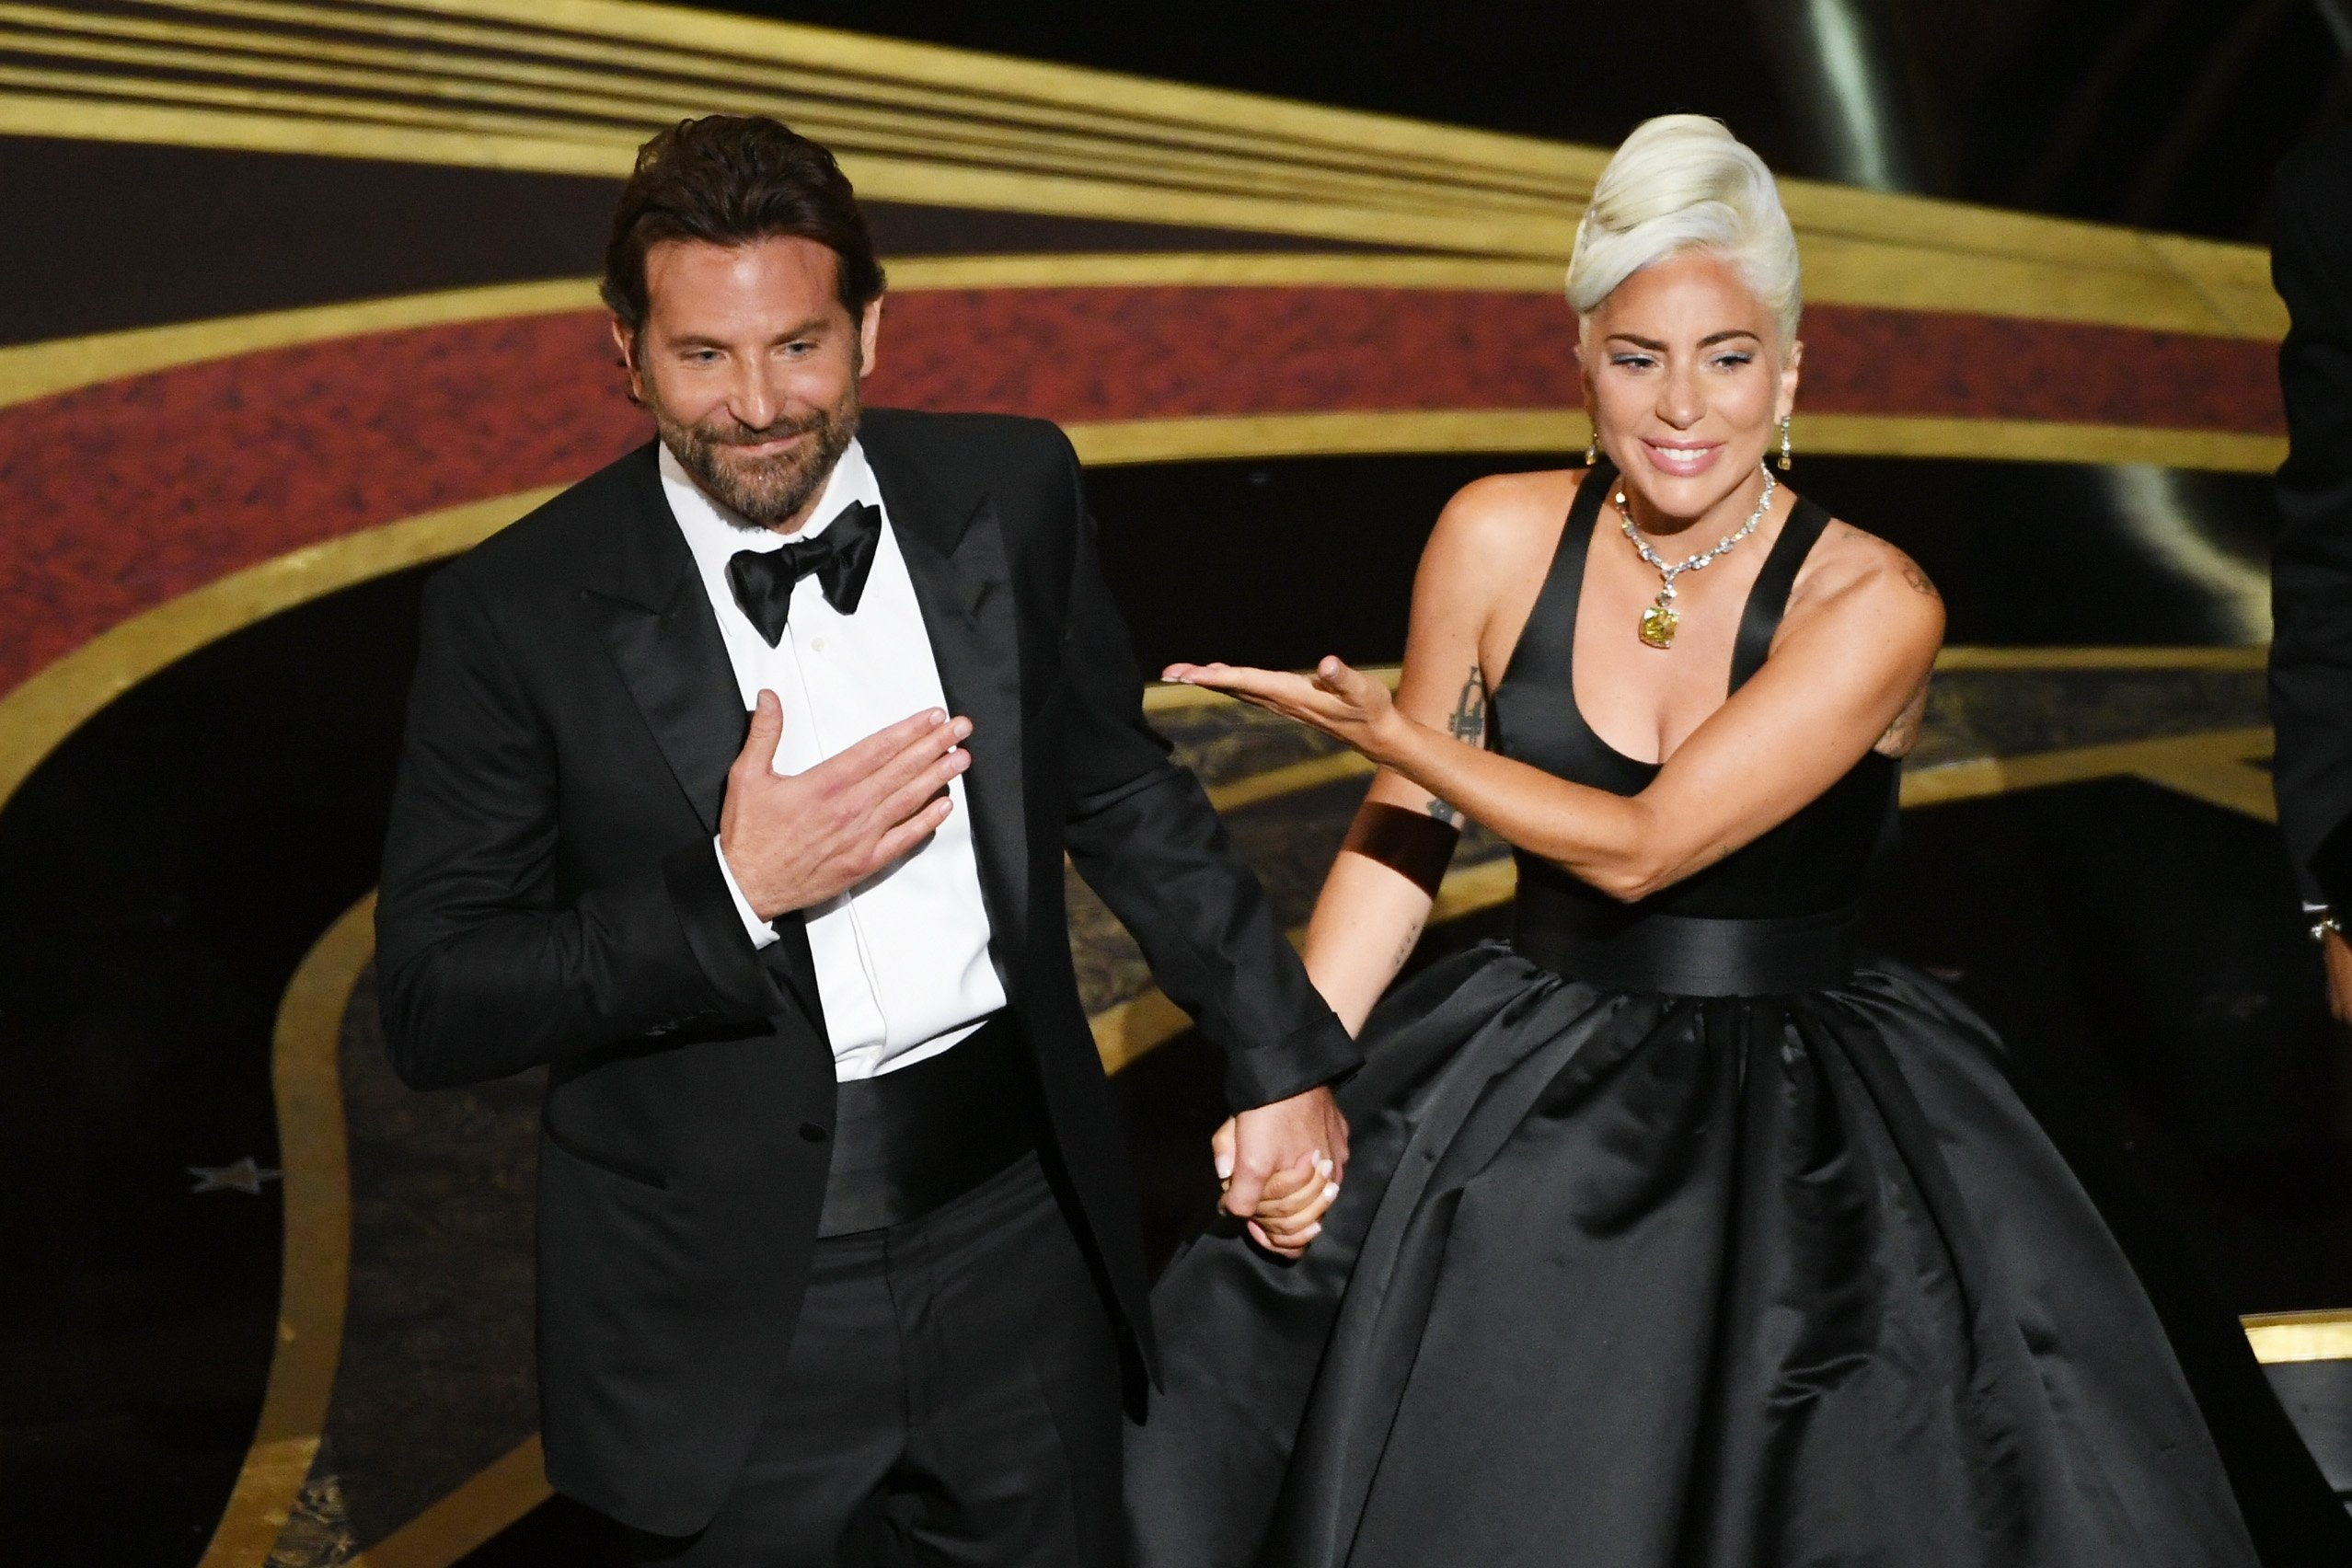 Lady Gaga and Bradley Cooper addressing the audience after their performanc at the Academy Awards | Photo: Getty Images